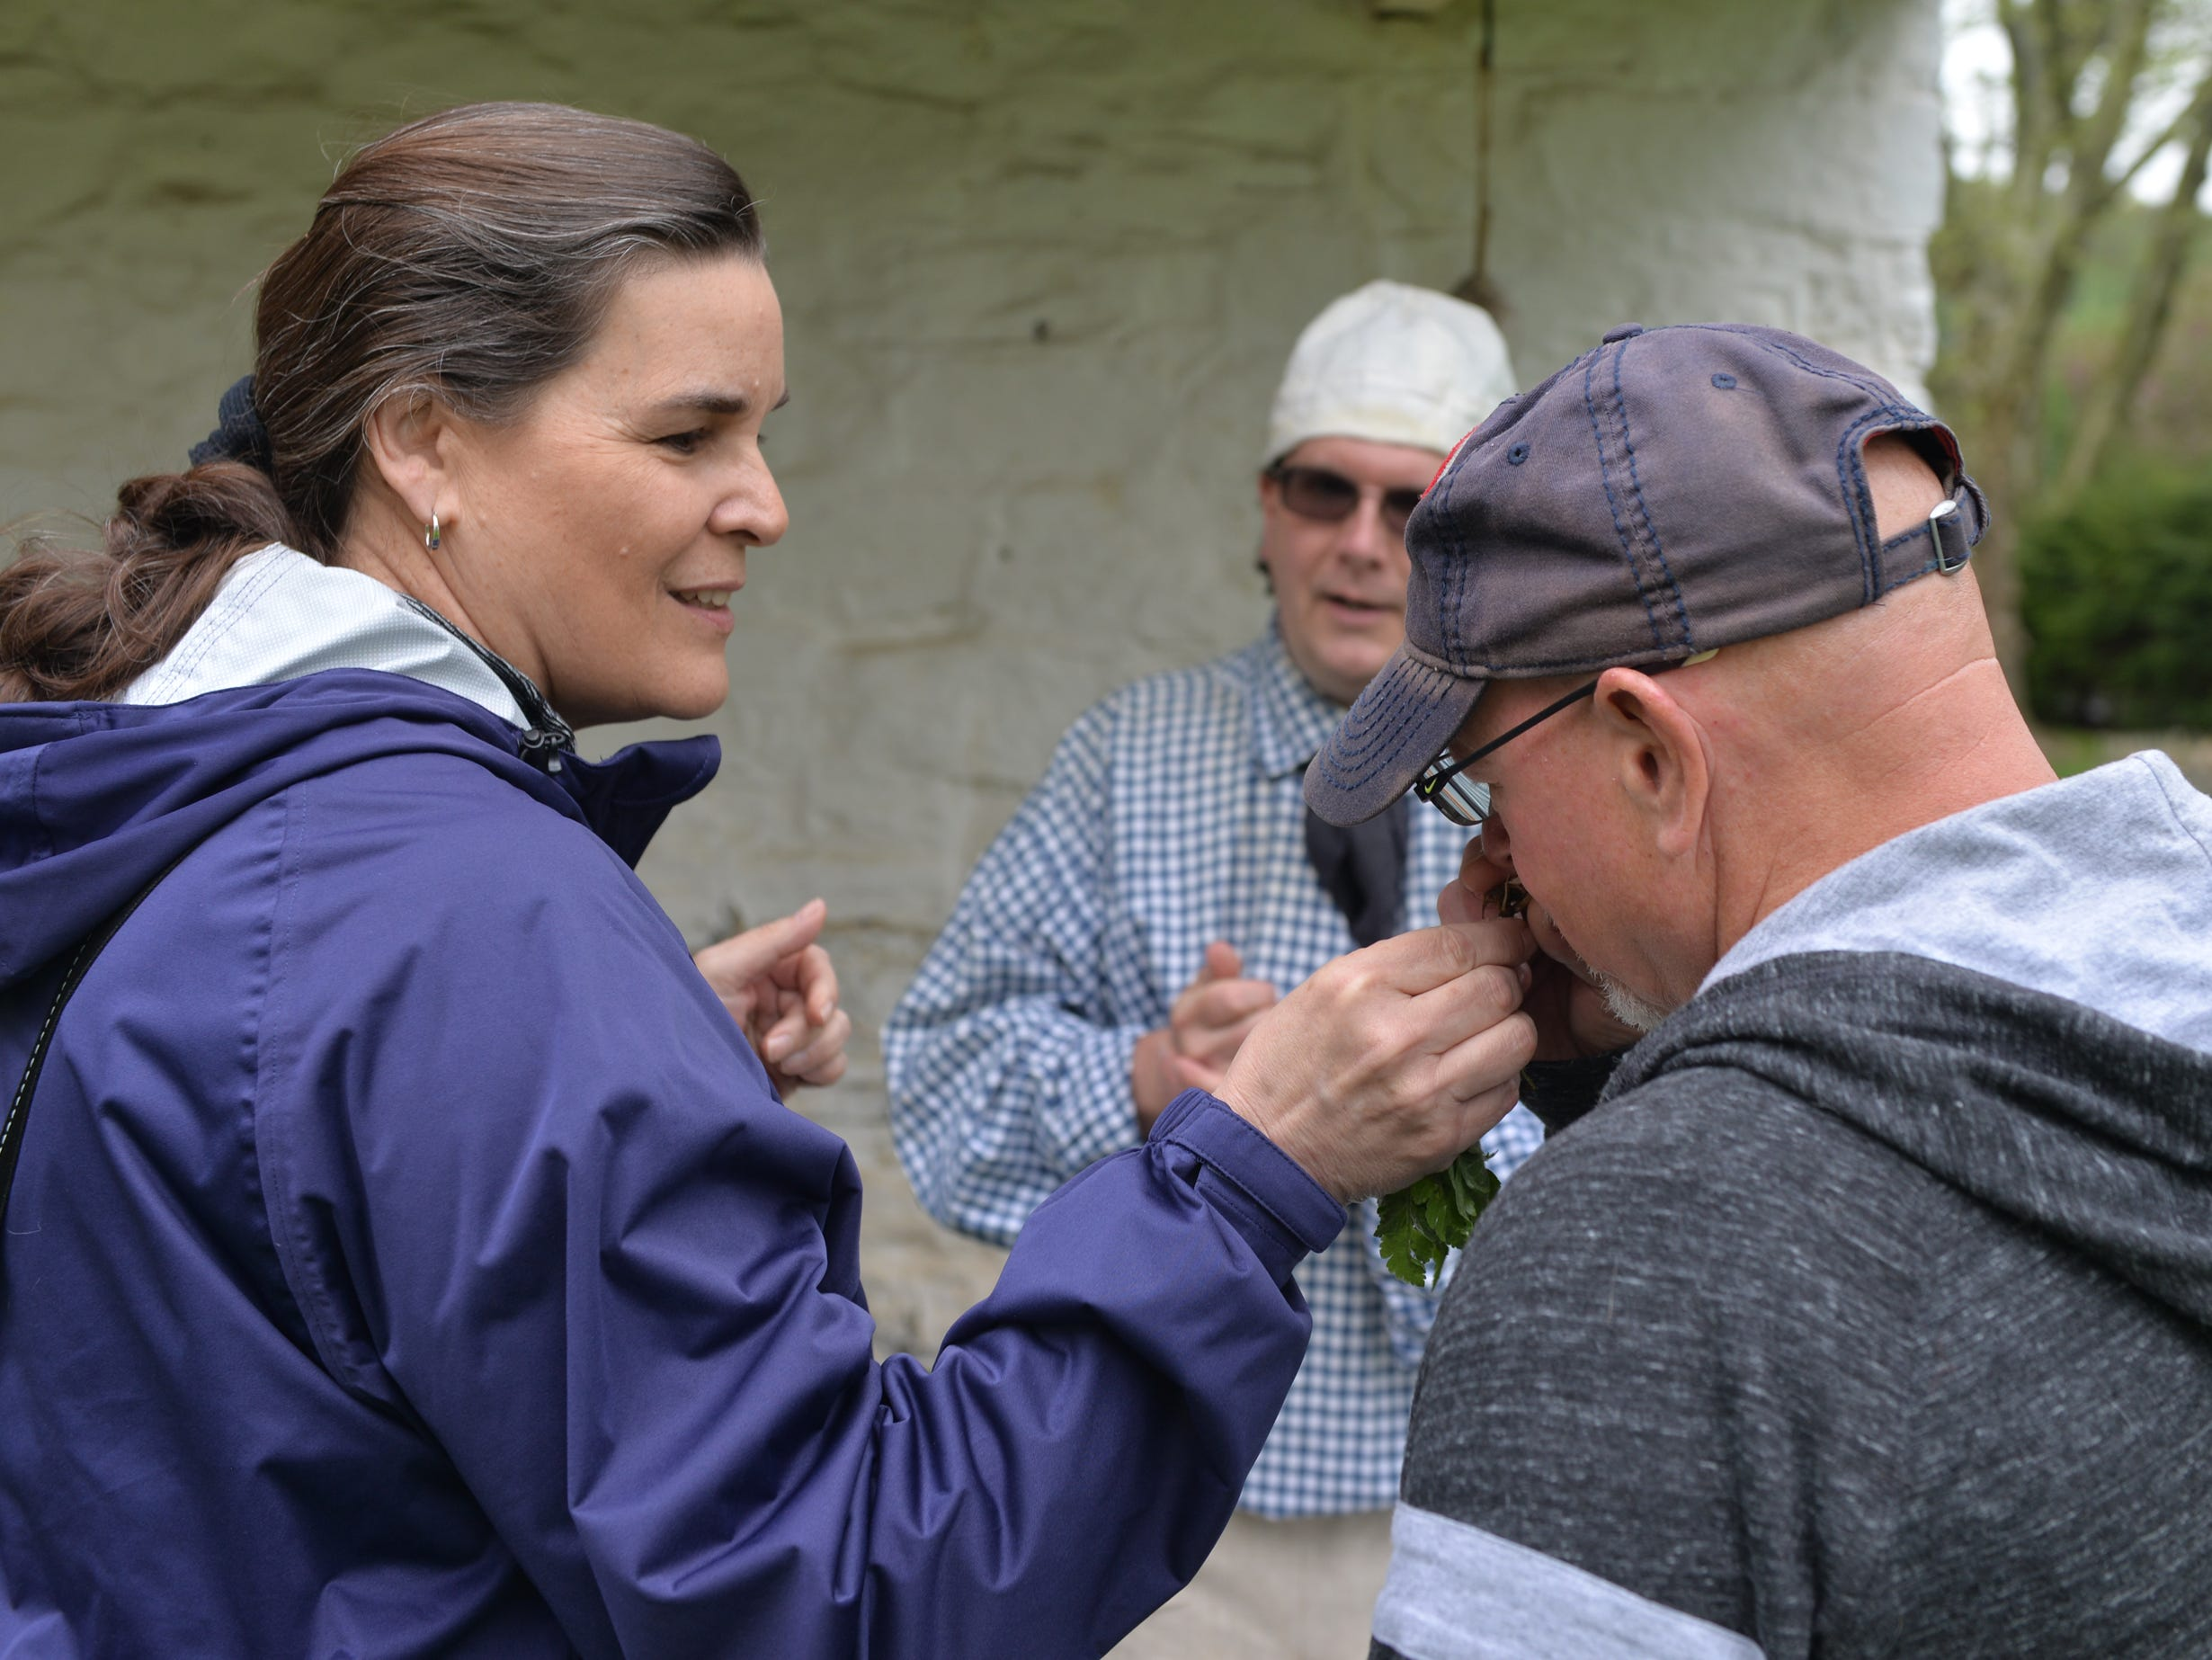 Dave Sonnen invited visitors to 'Making Sense of History' to touch and smell the fragrant herbs at a special living history program held at The Conrad Weiser Homestead in Womelsdorf on Sunday, April 28, 2019.